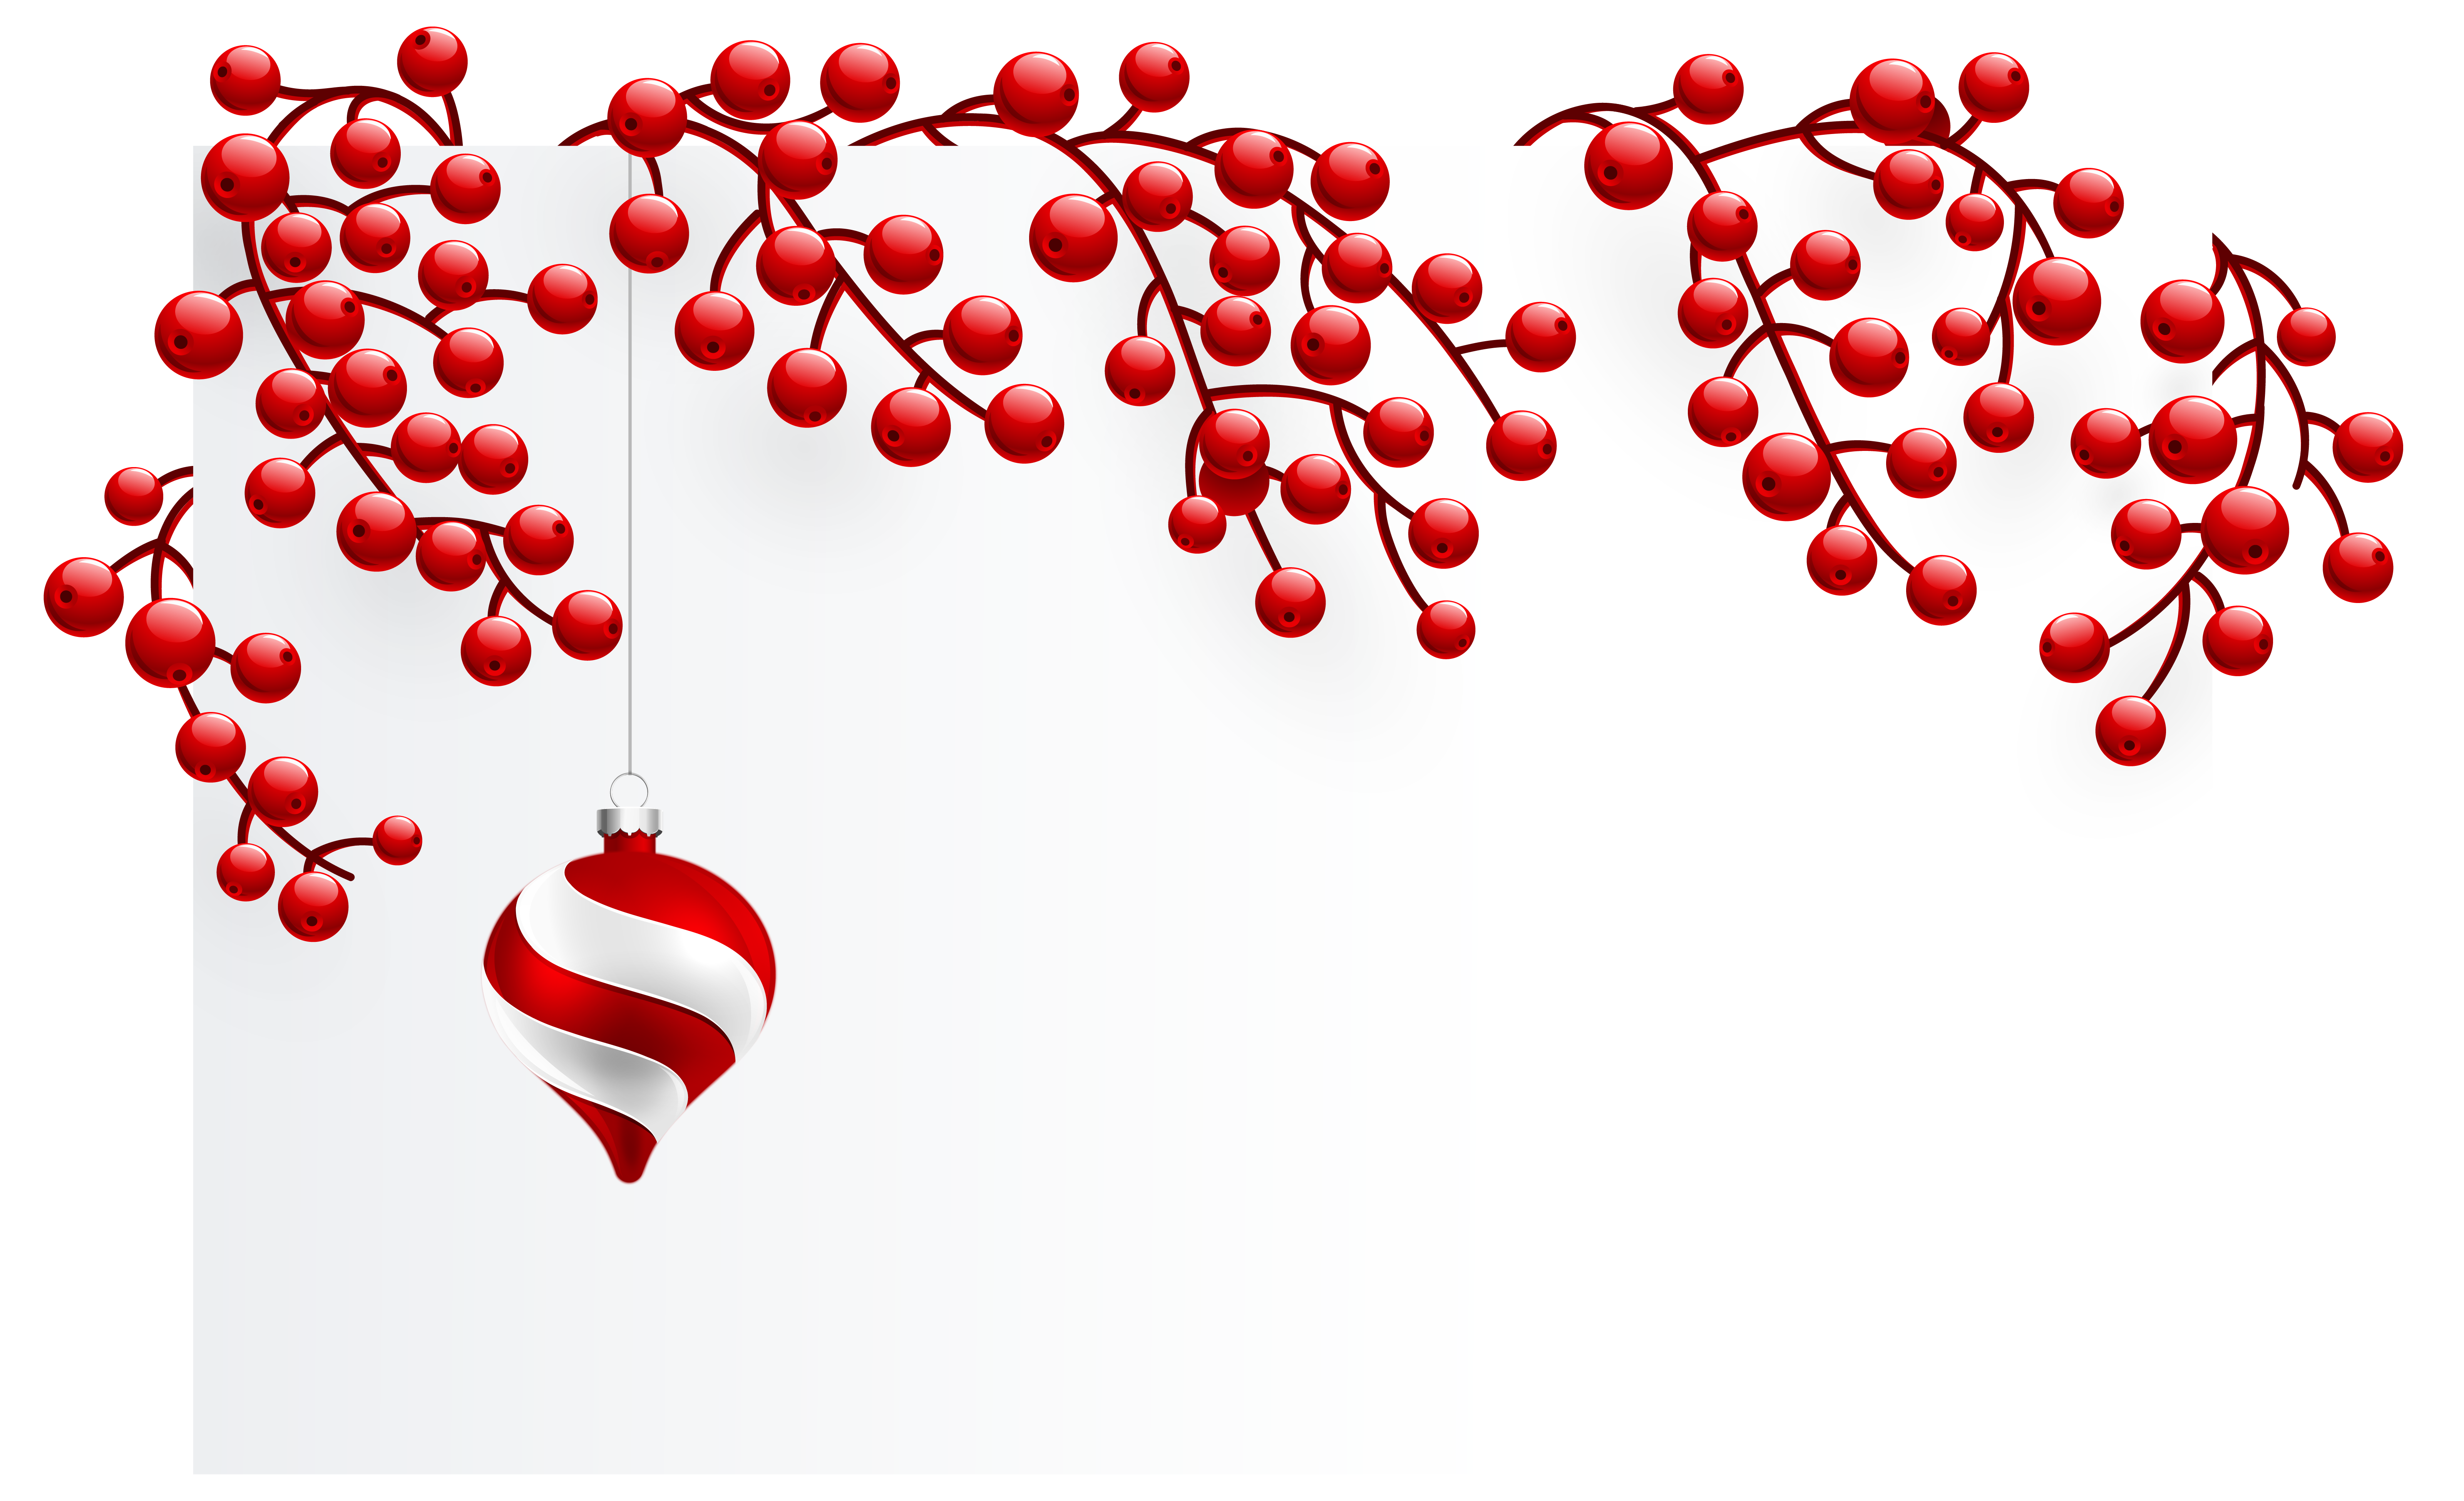 Blank template png image. Clipart christmas love